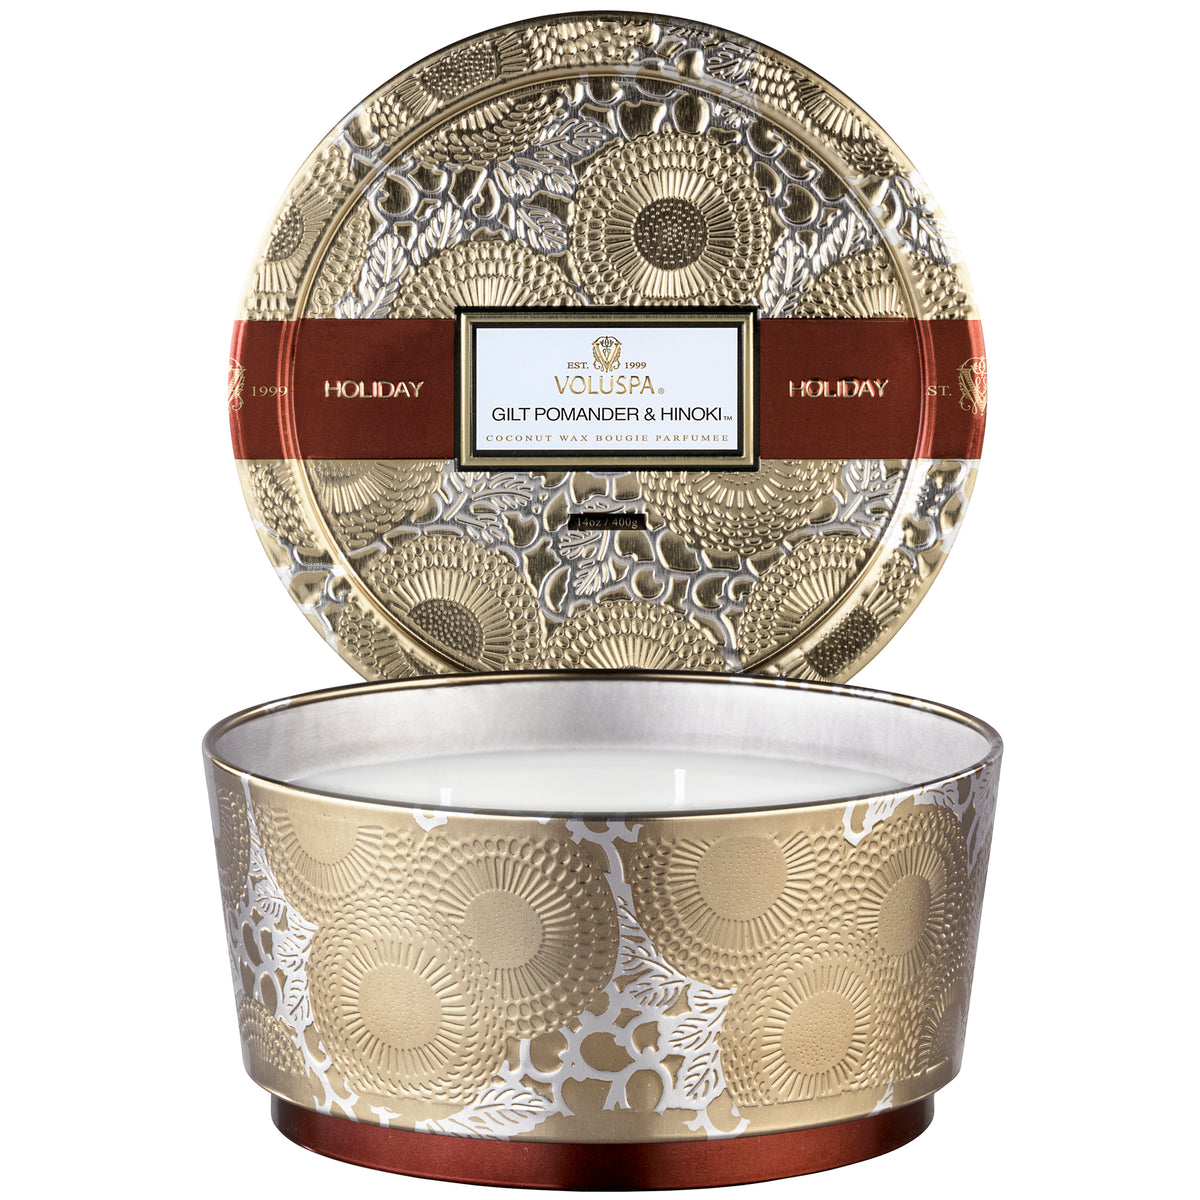 Gilt Pomander & Hinoki - Seasonal 3 Wick Pedestal Tin Candle - 1